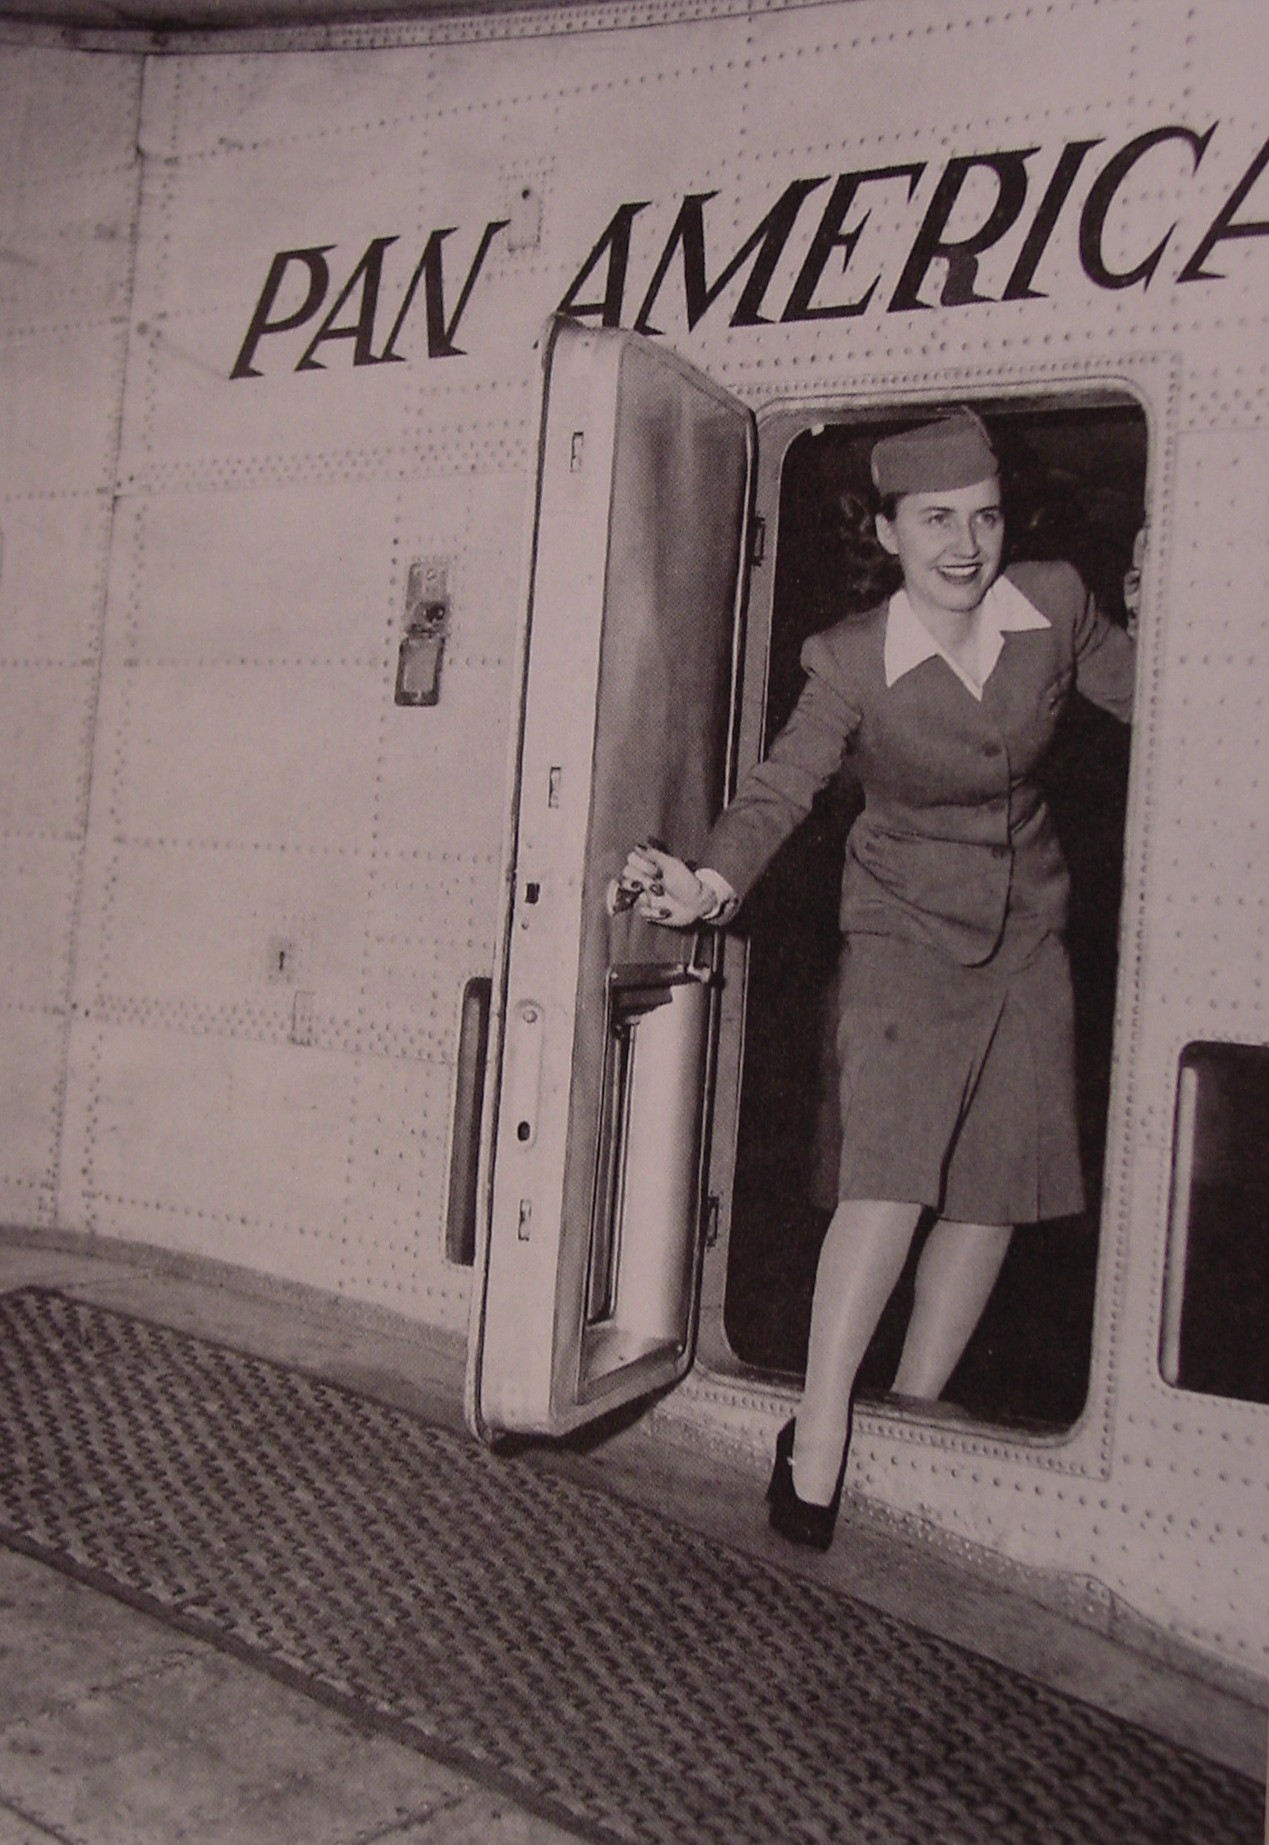 1940s Pan Am's first Stewardess, Madeline Cuniff in the doorway of a Boeing 314 flying boat